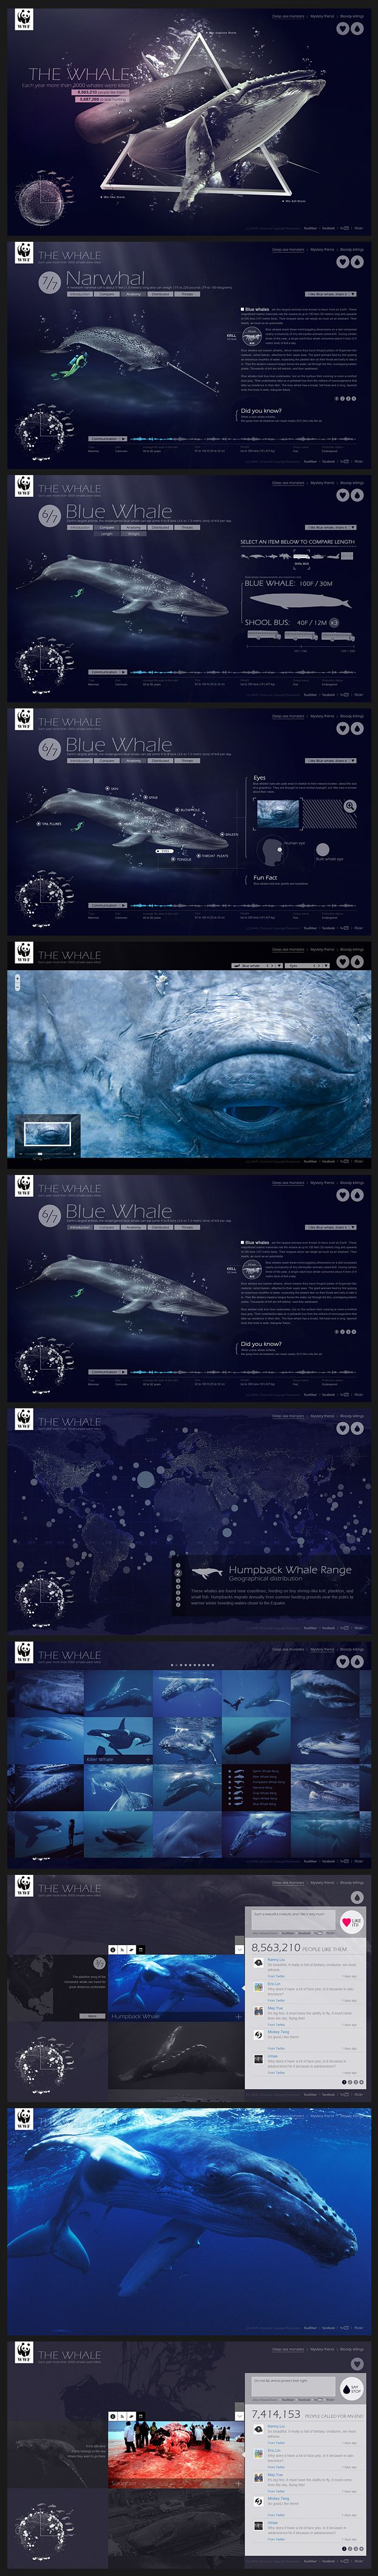 WWF Whale Website | #webdesign #ui